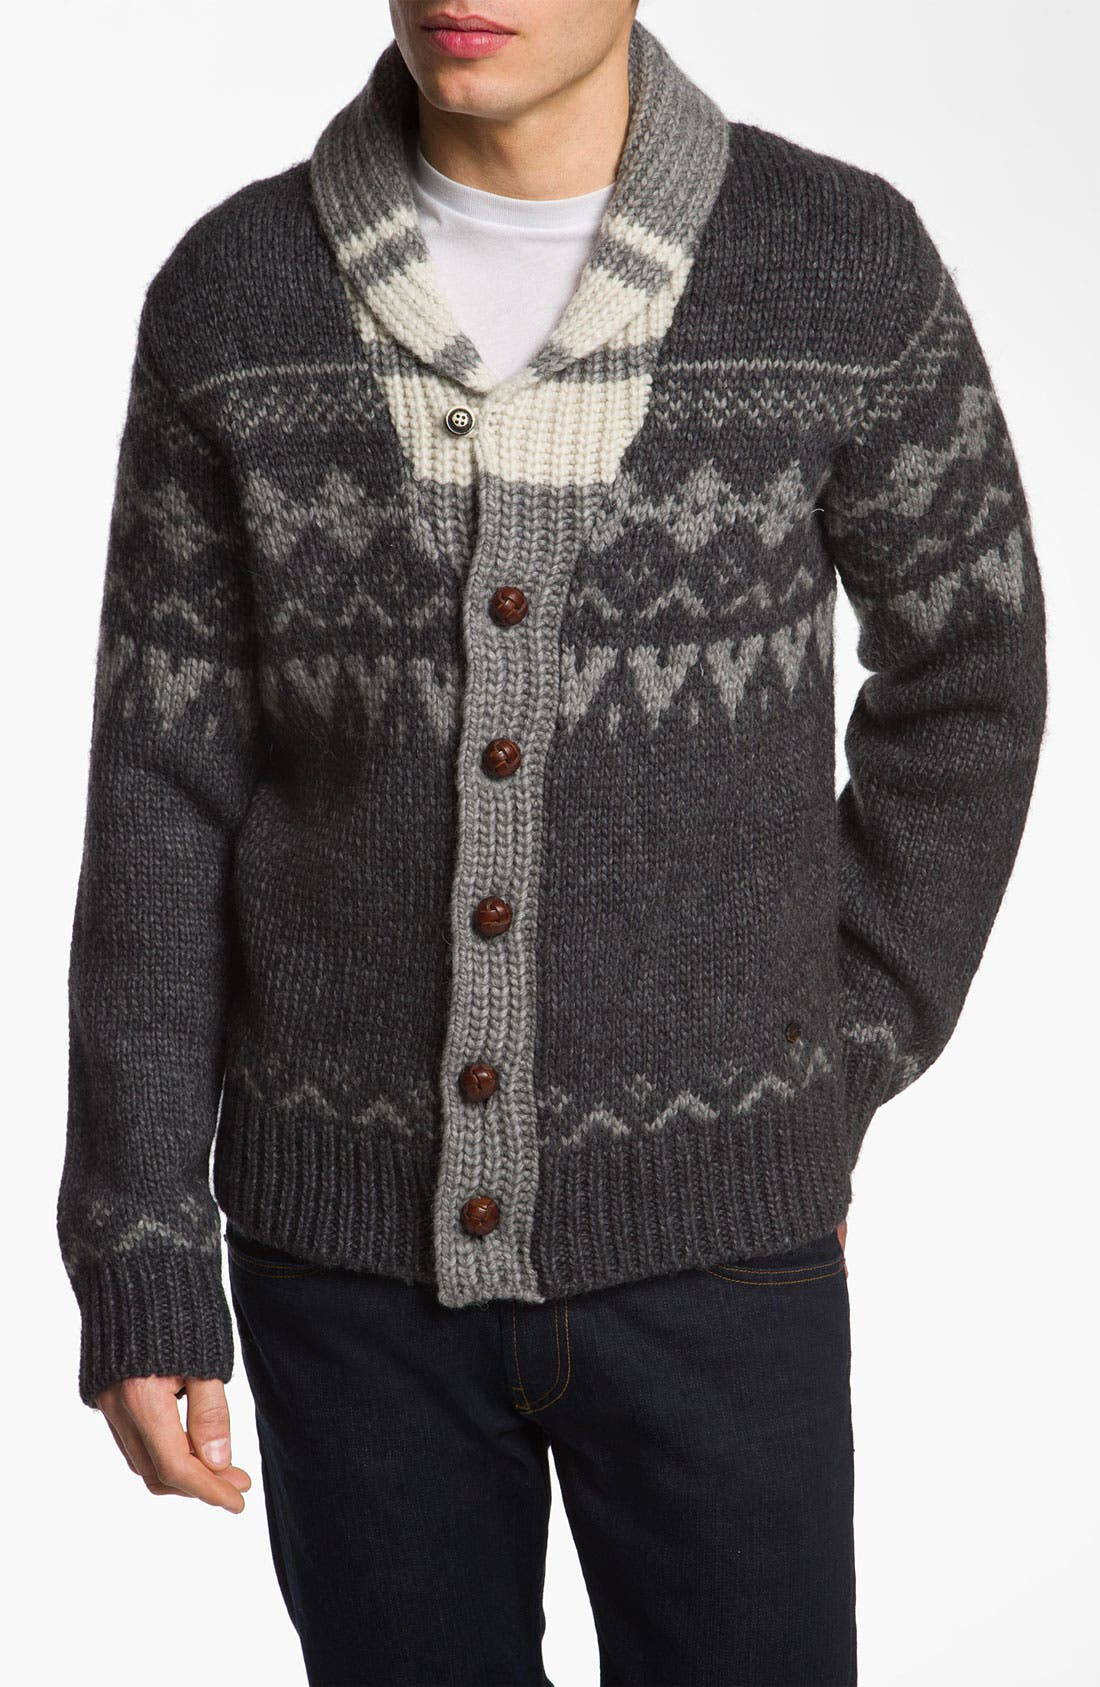 Main Image - Woolrich John Rich 'Trapper Peak' Shawl Collar Cardigan